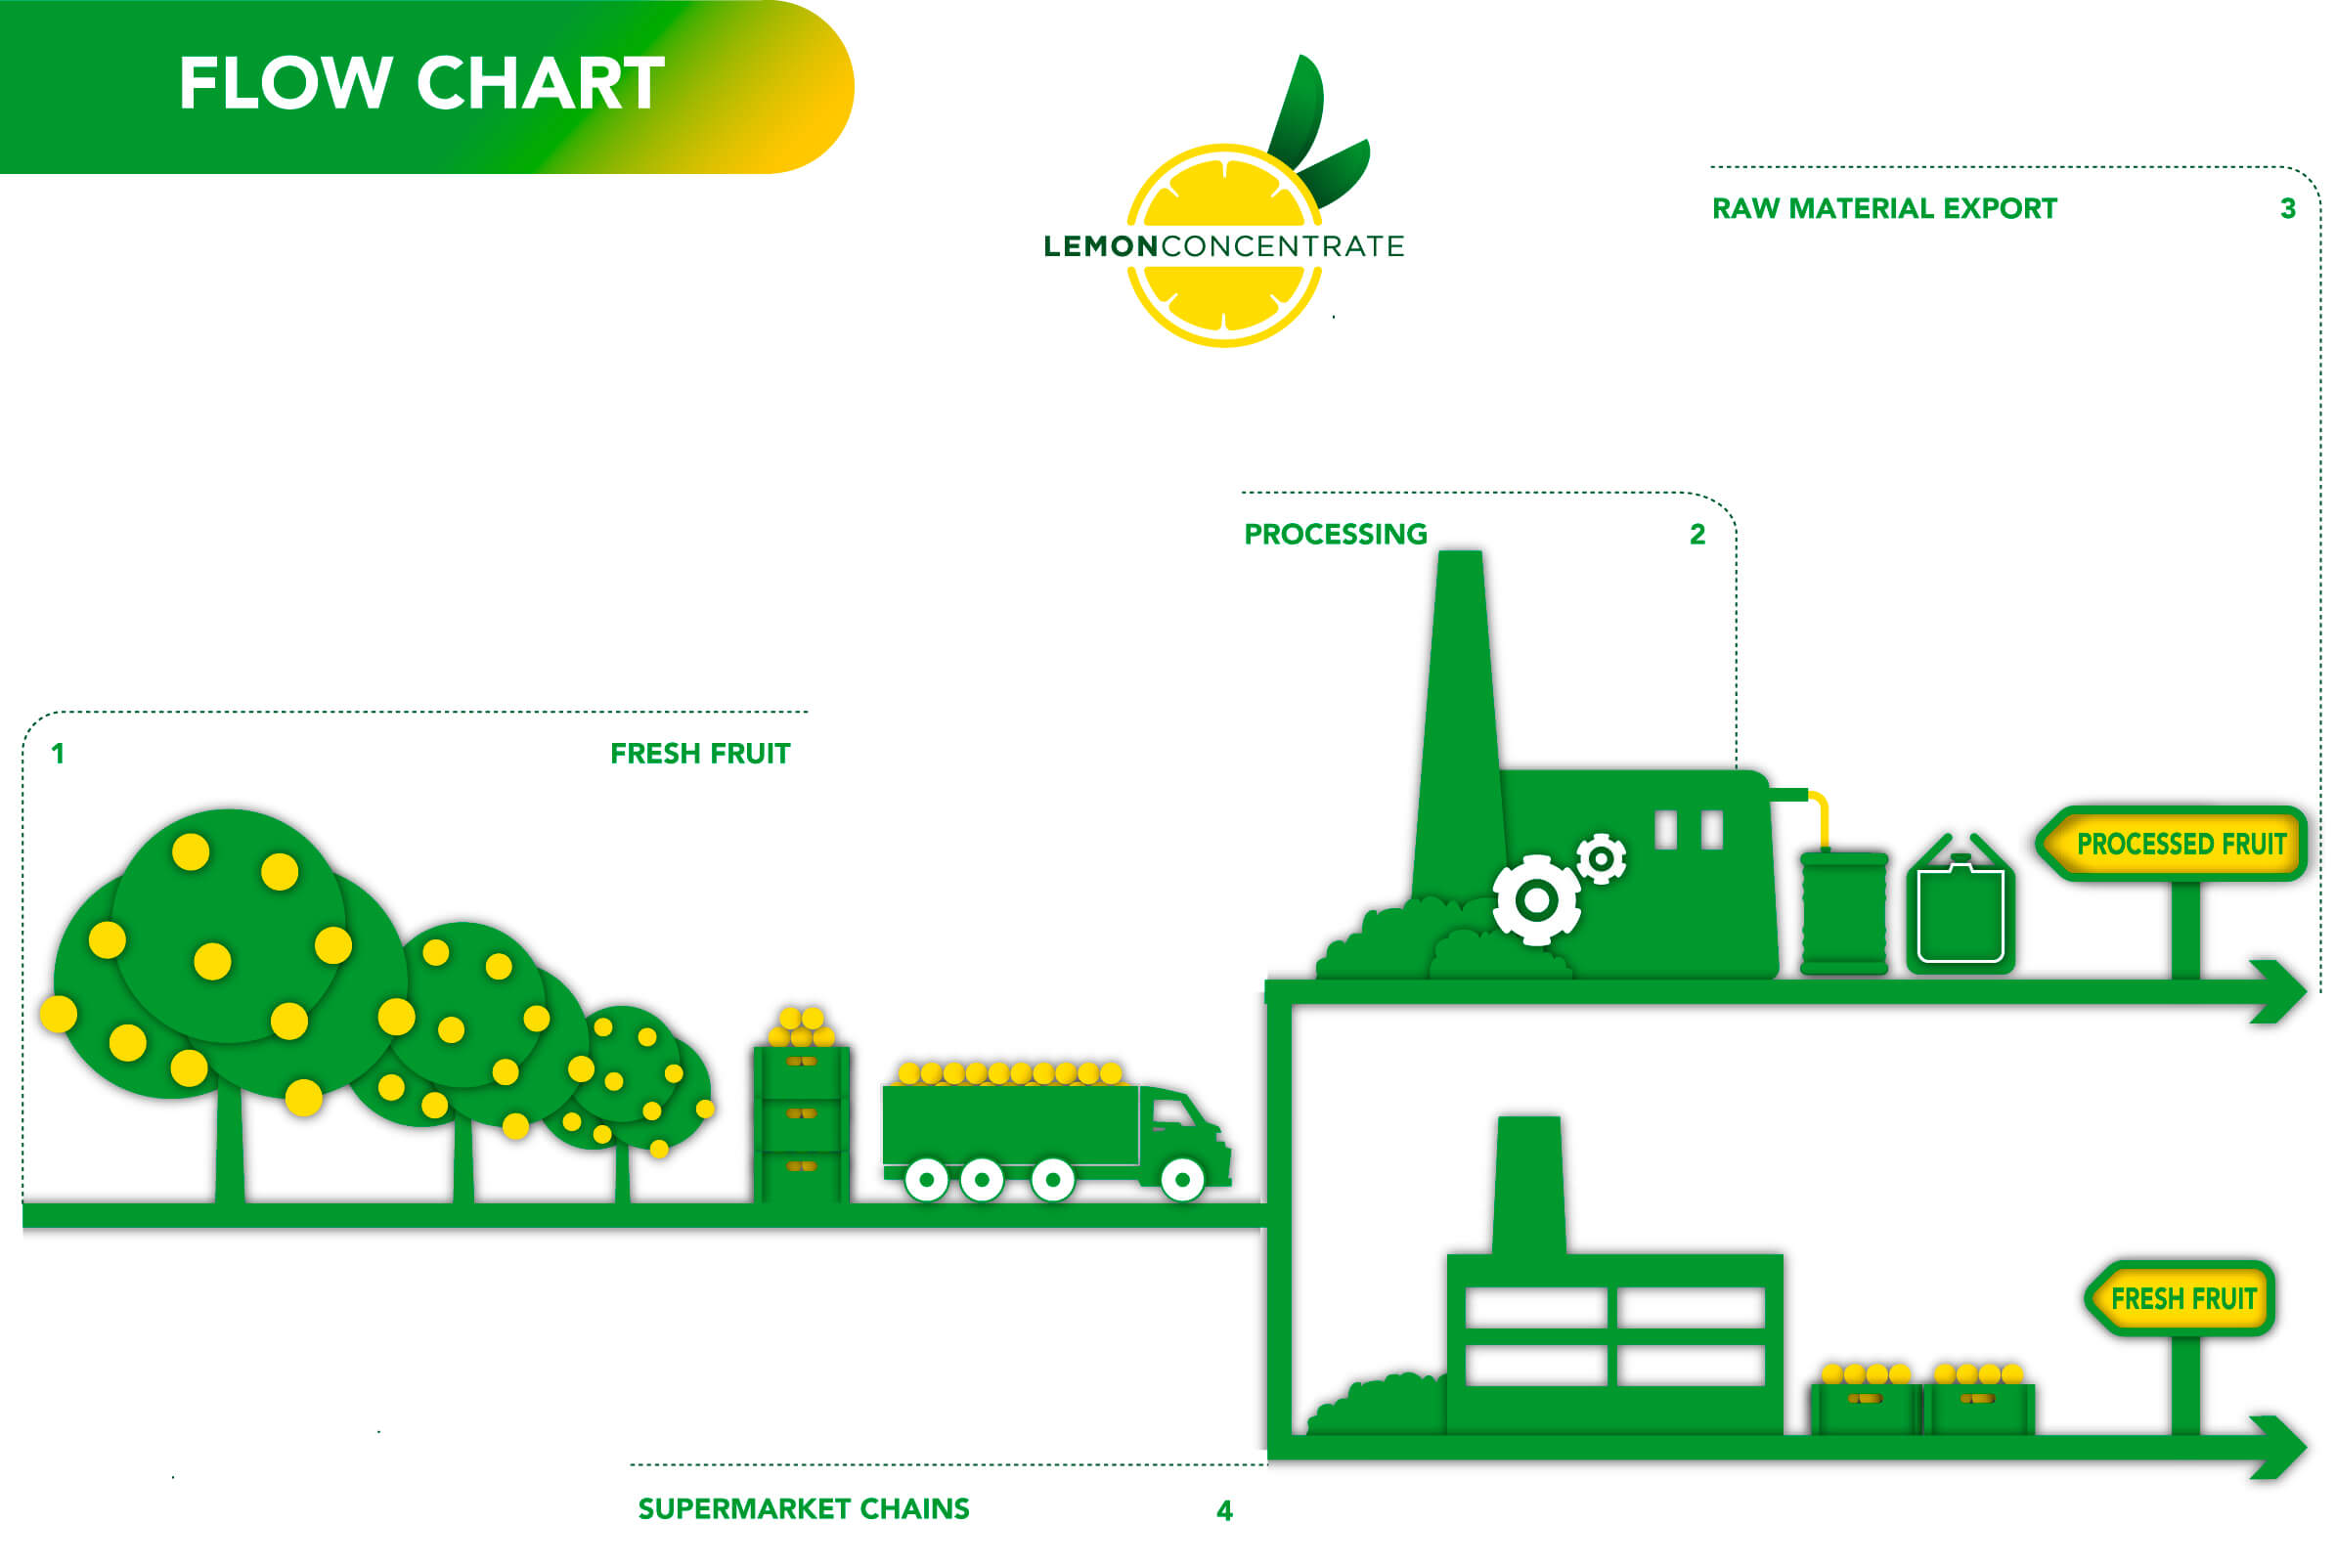 flow-chart-presentacion-lemonconcentrate_2015